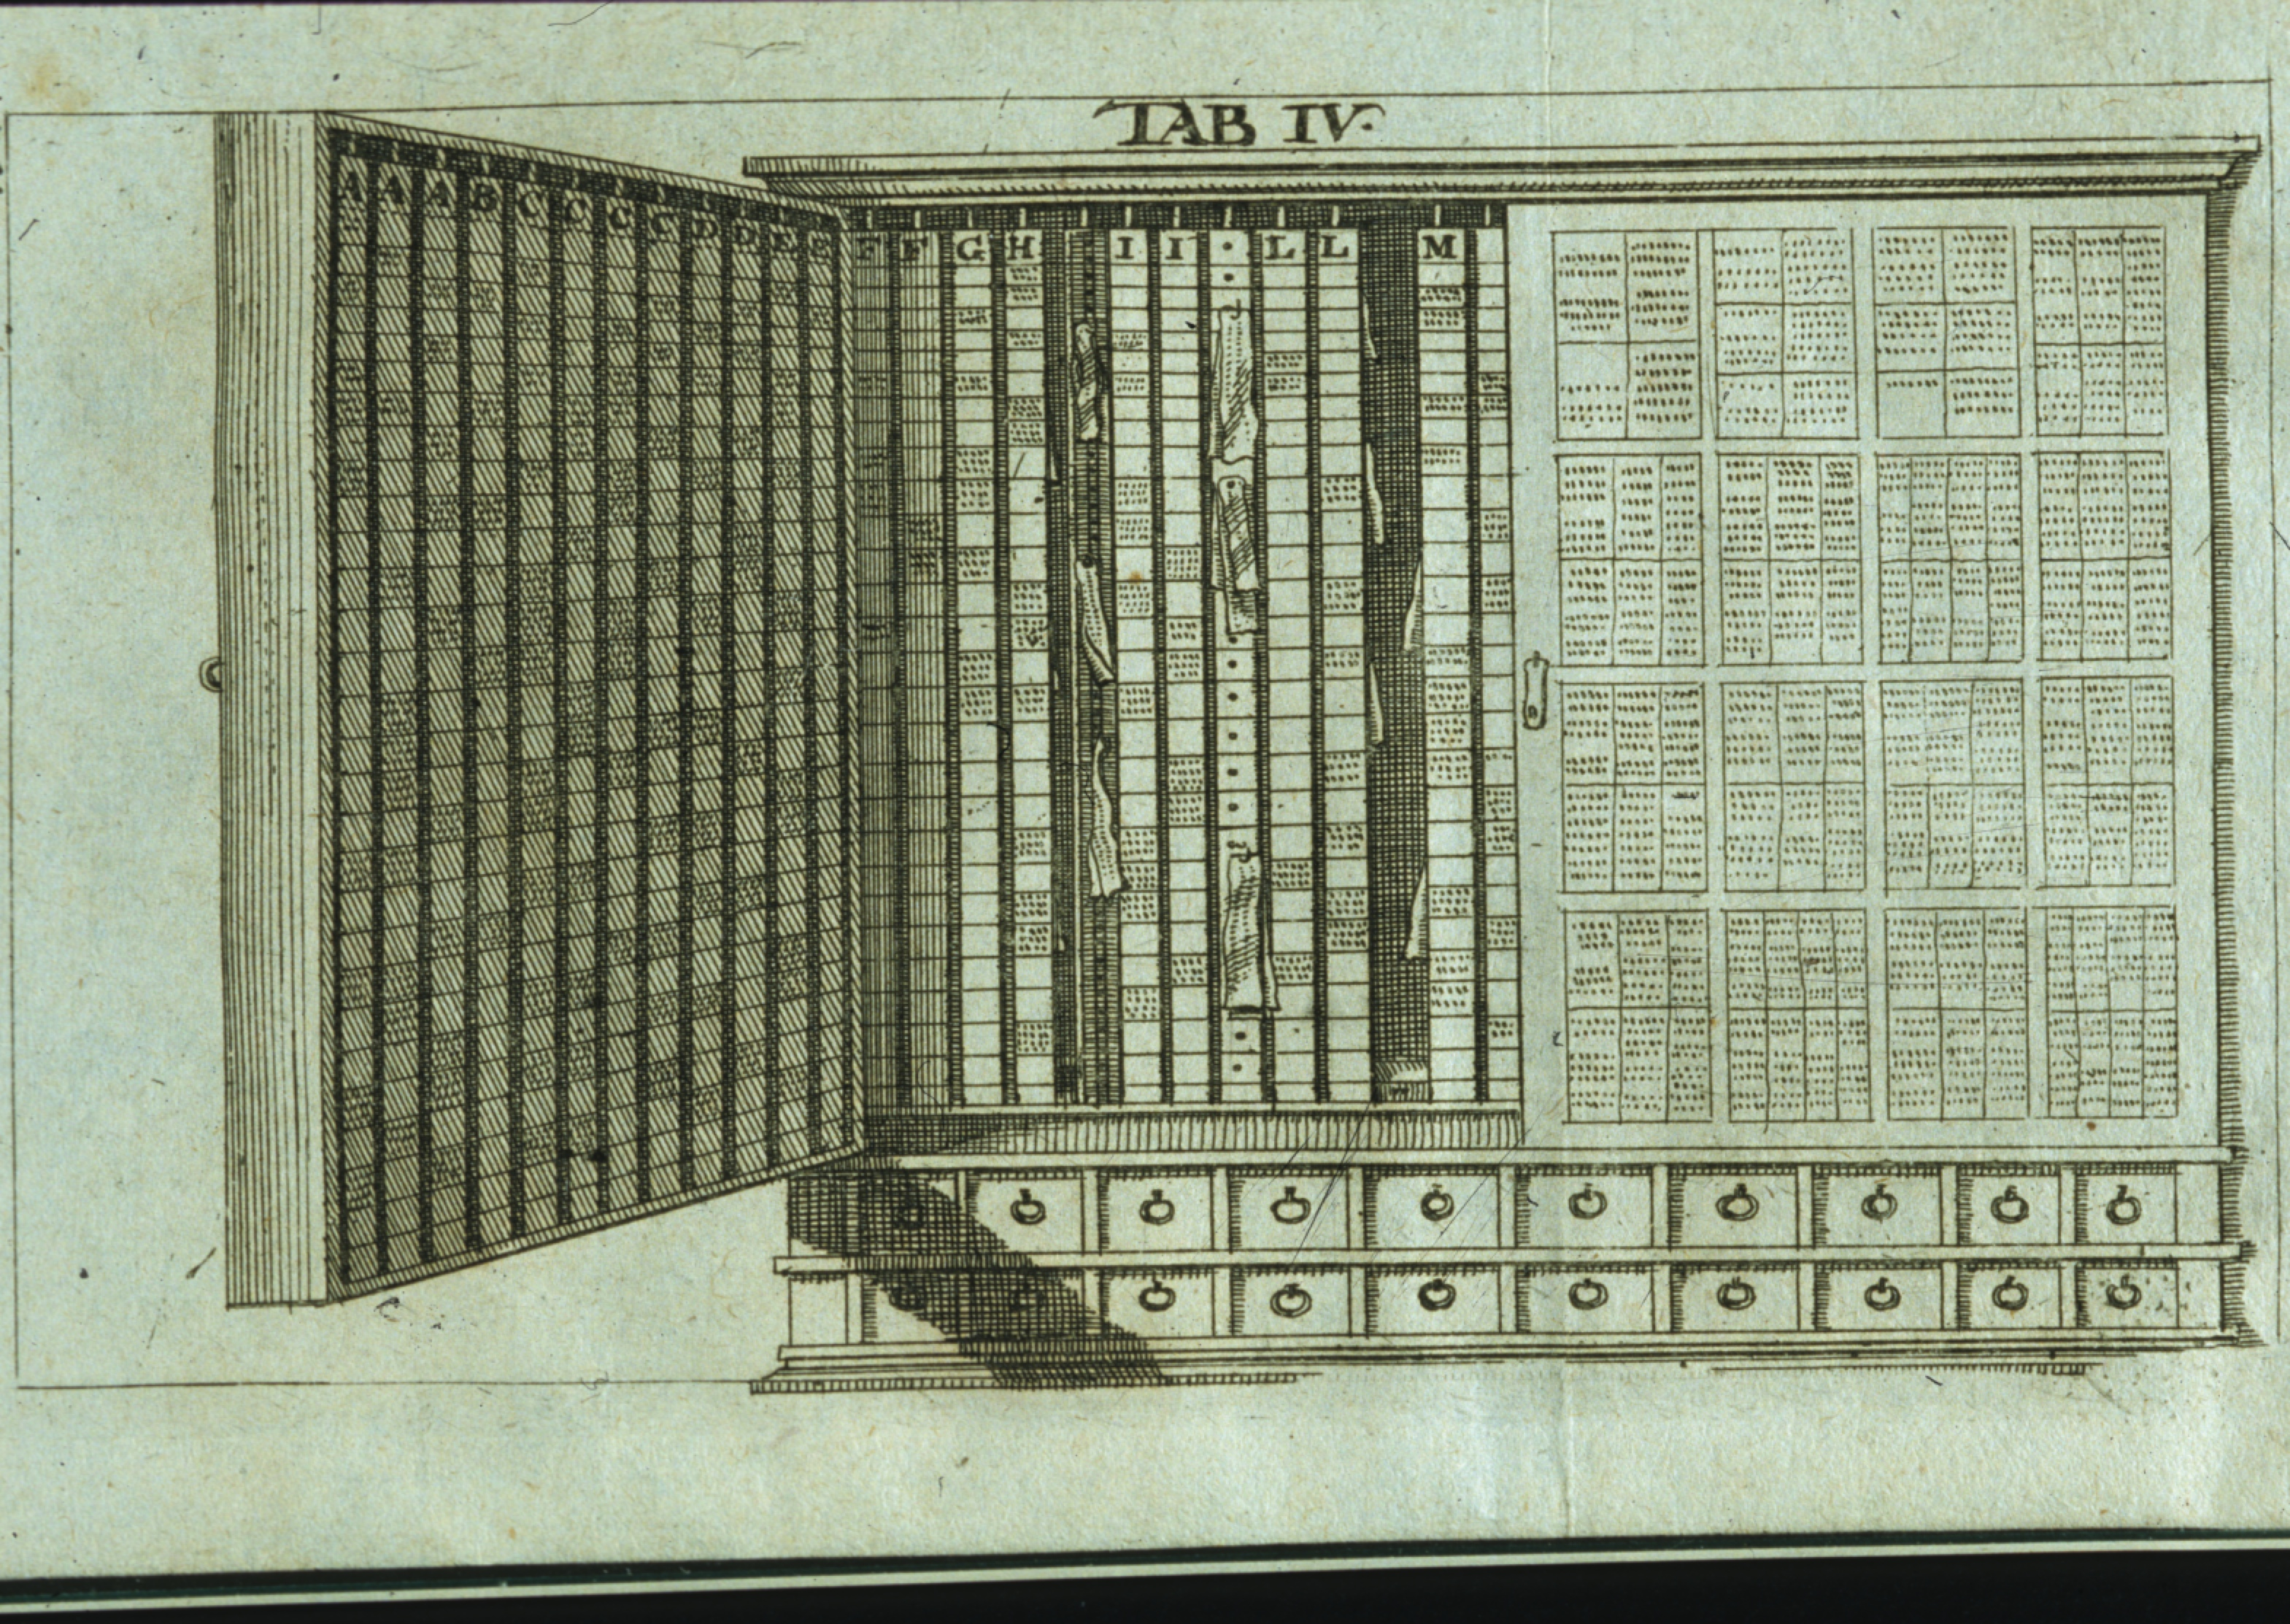 1689 cabinet for arranging notes